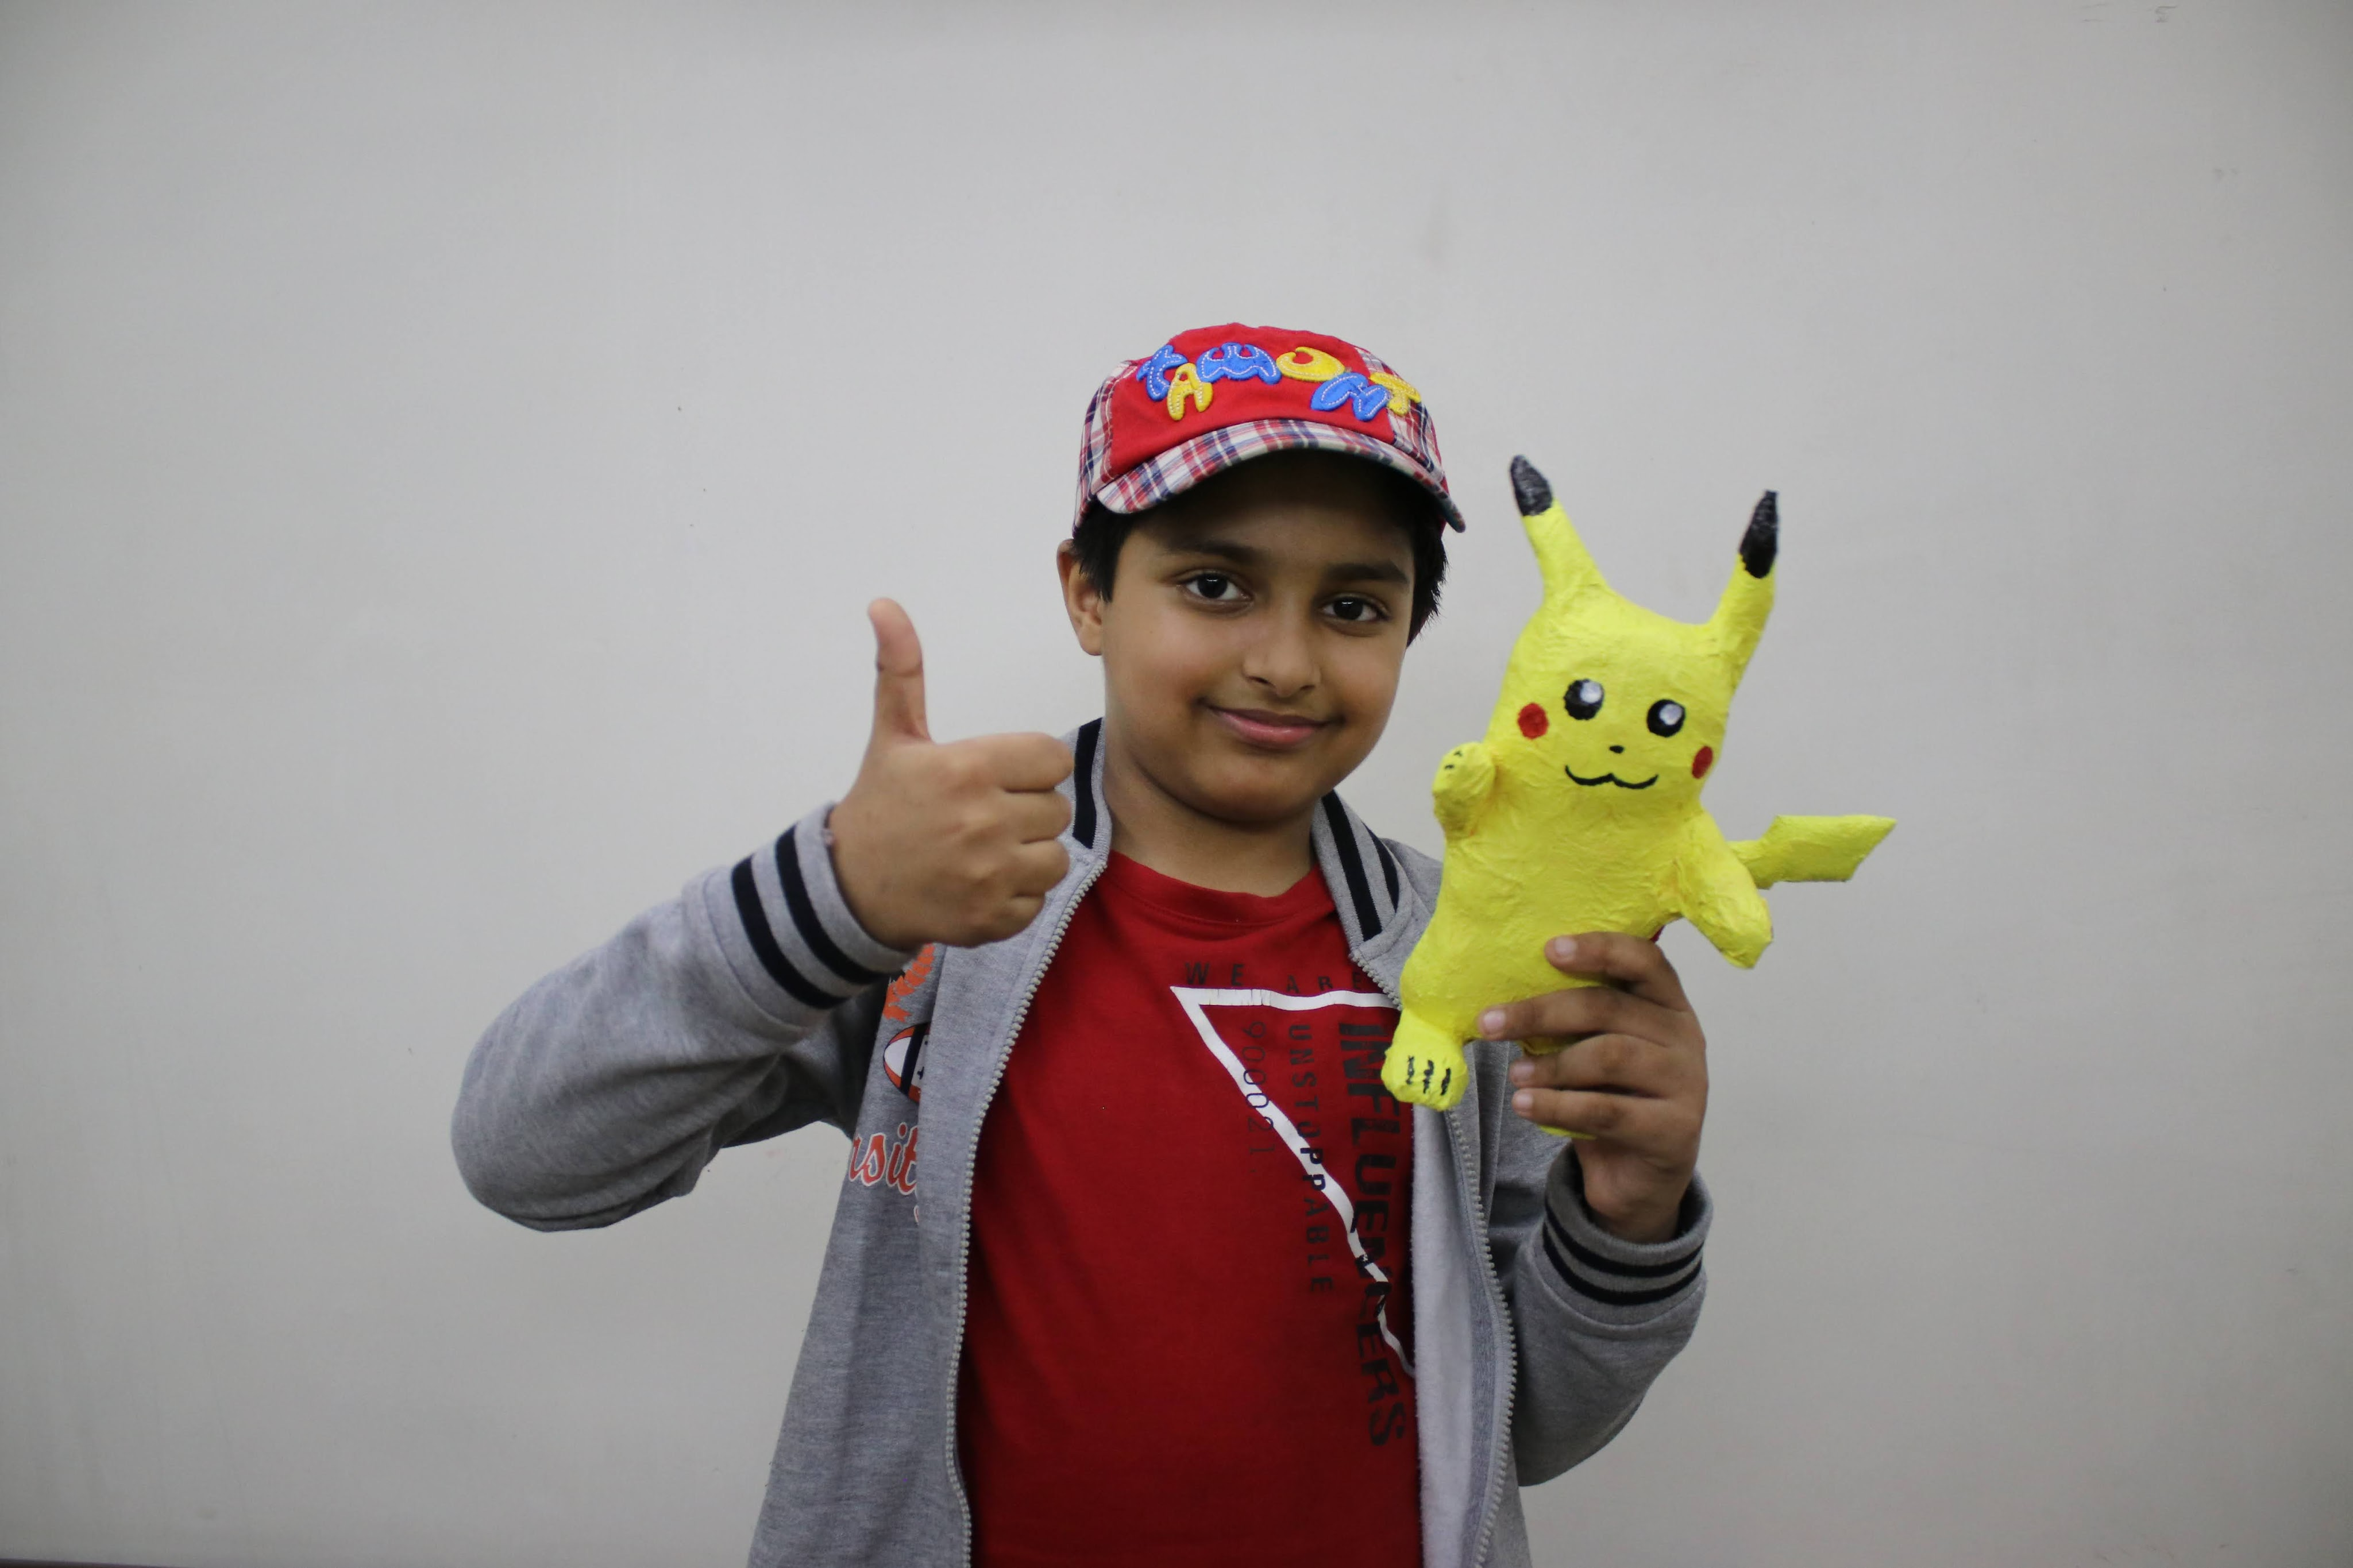 Pikachu Toy made with Paper